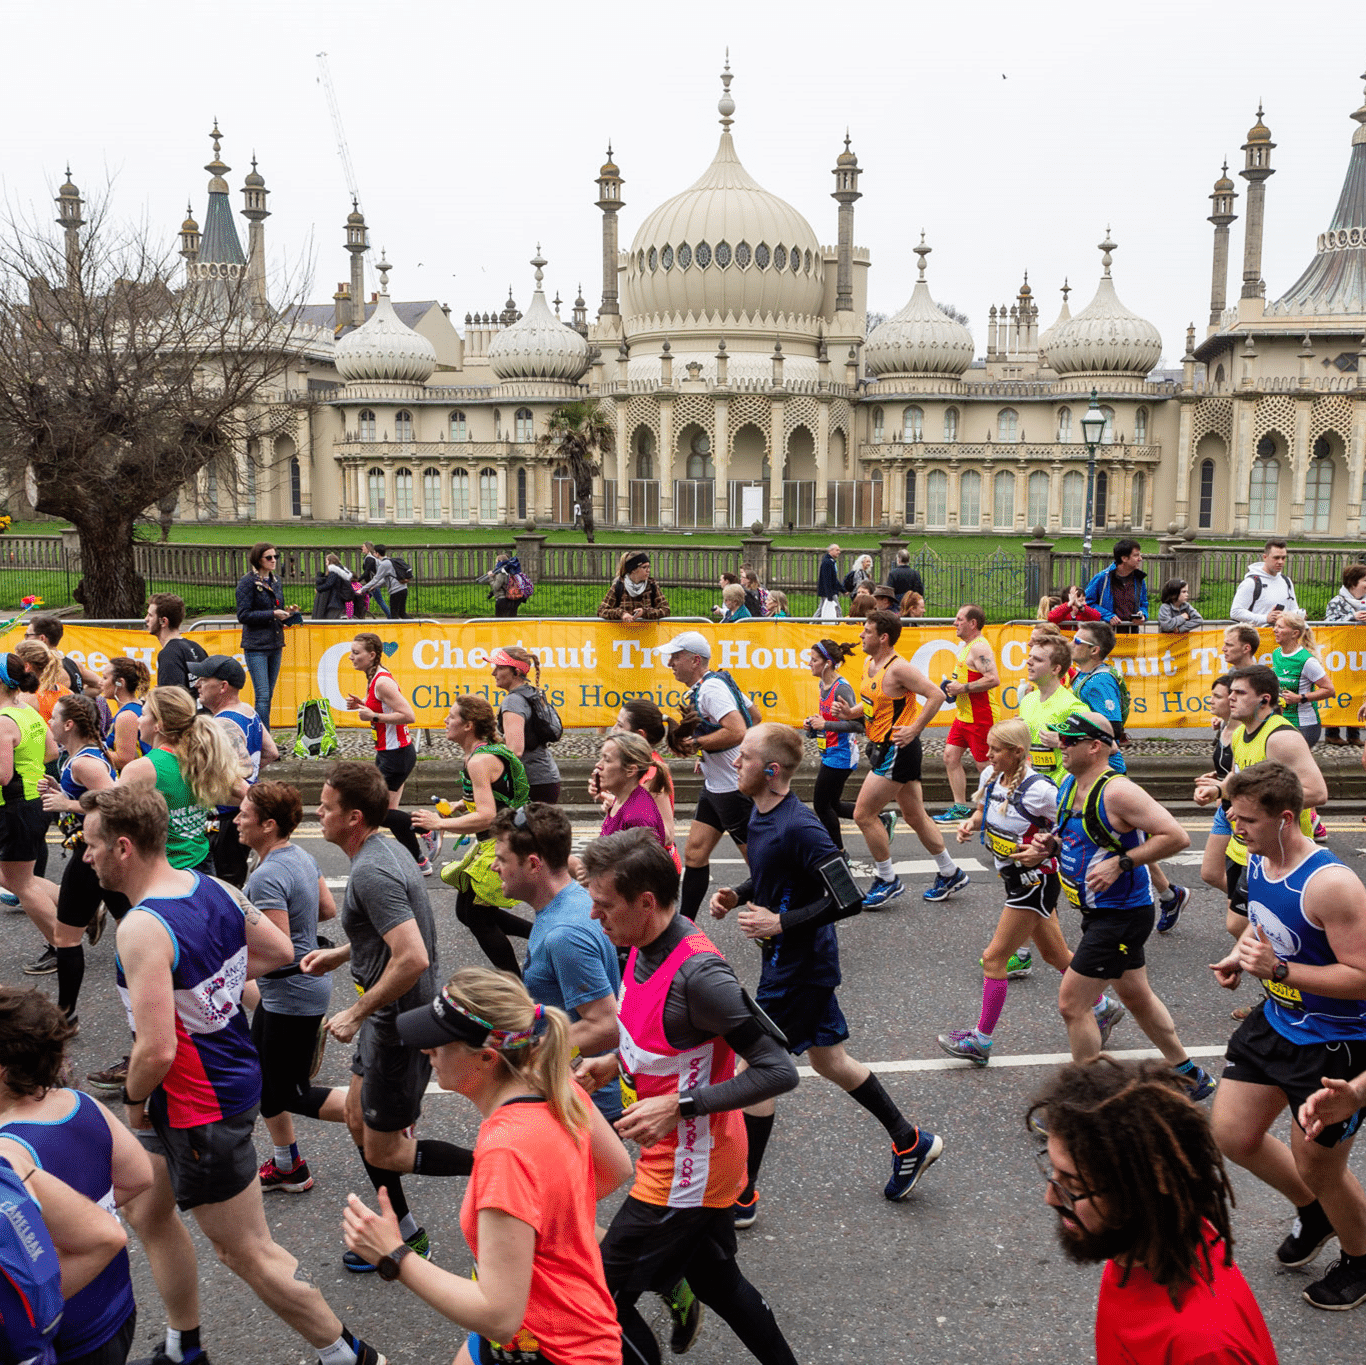 Image shows a crowd of runners running in front of the Royal Pavilion in Brighton